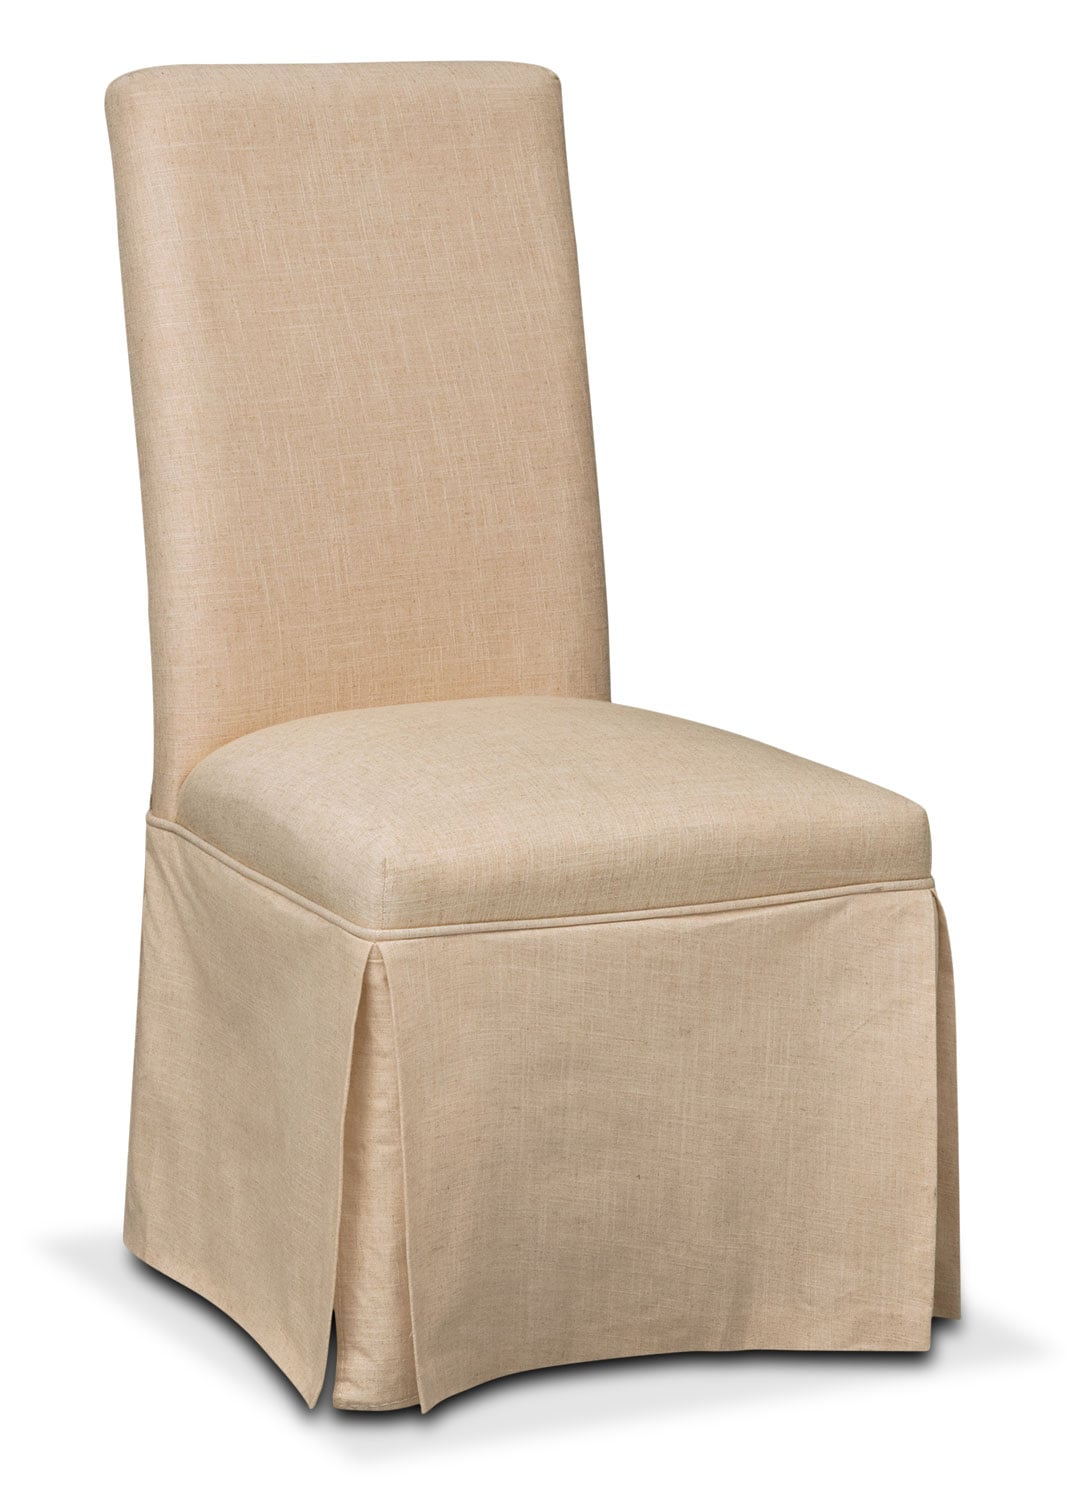 Dining Room Furniture - Patrice Side Chair - Natural